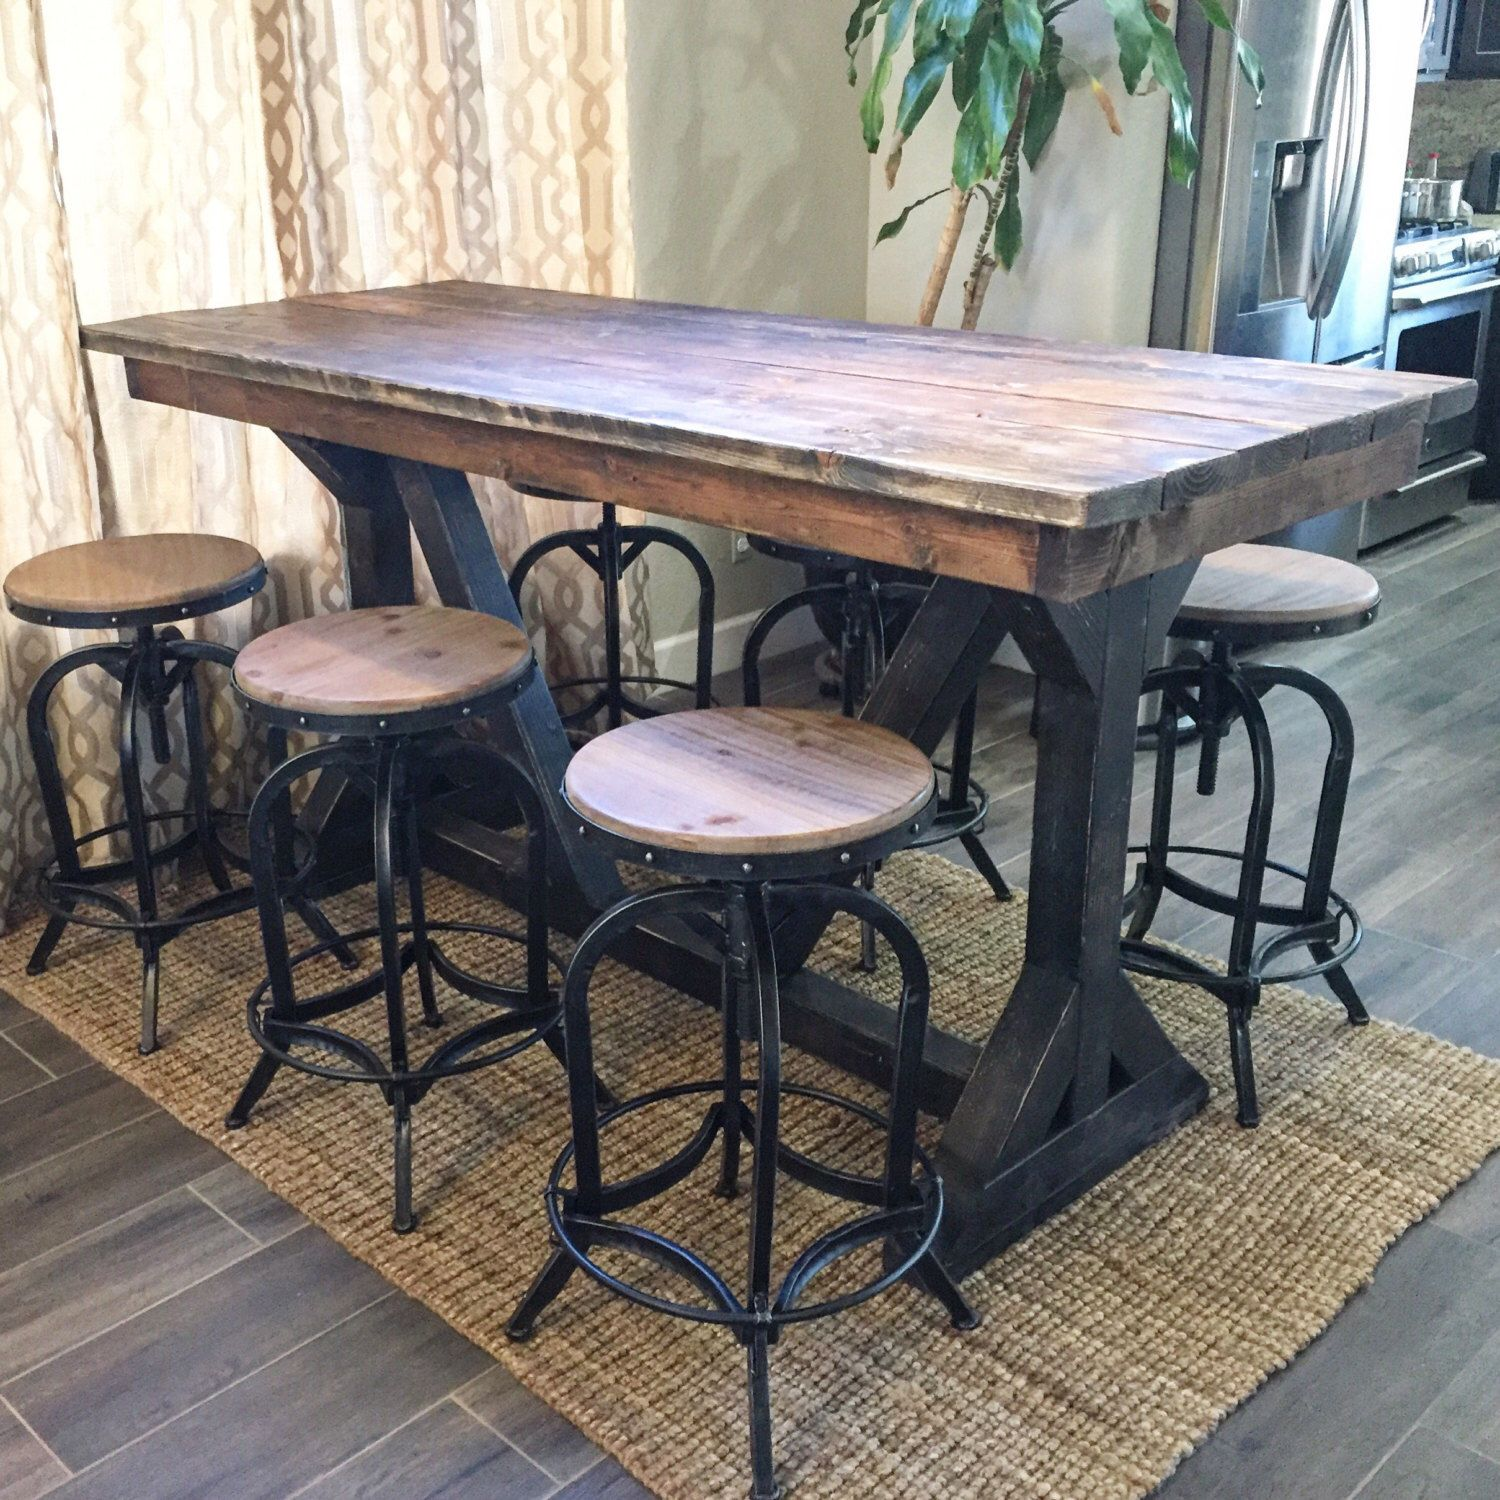 Rustic Pub Table | Furniture items in 2018 | Pinterest ...